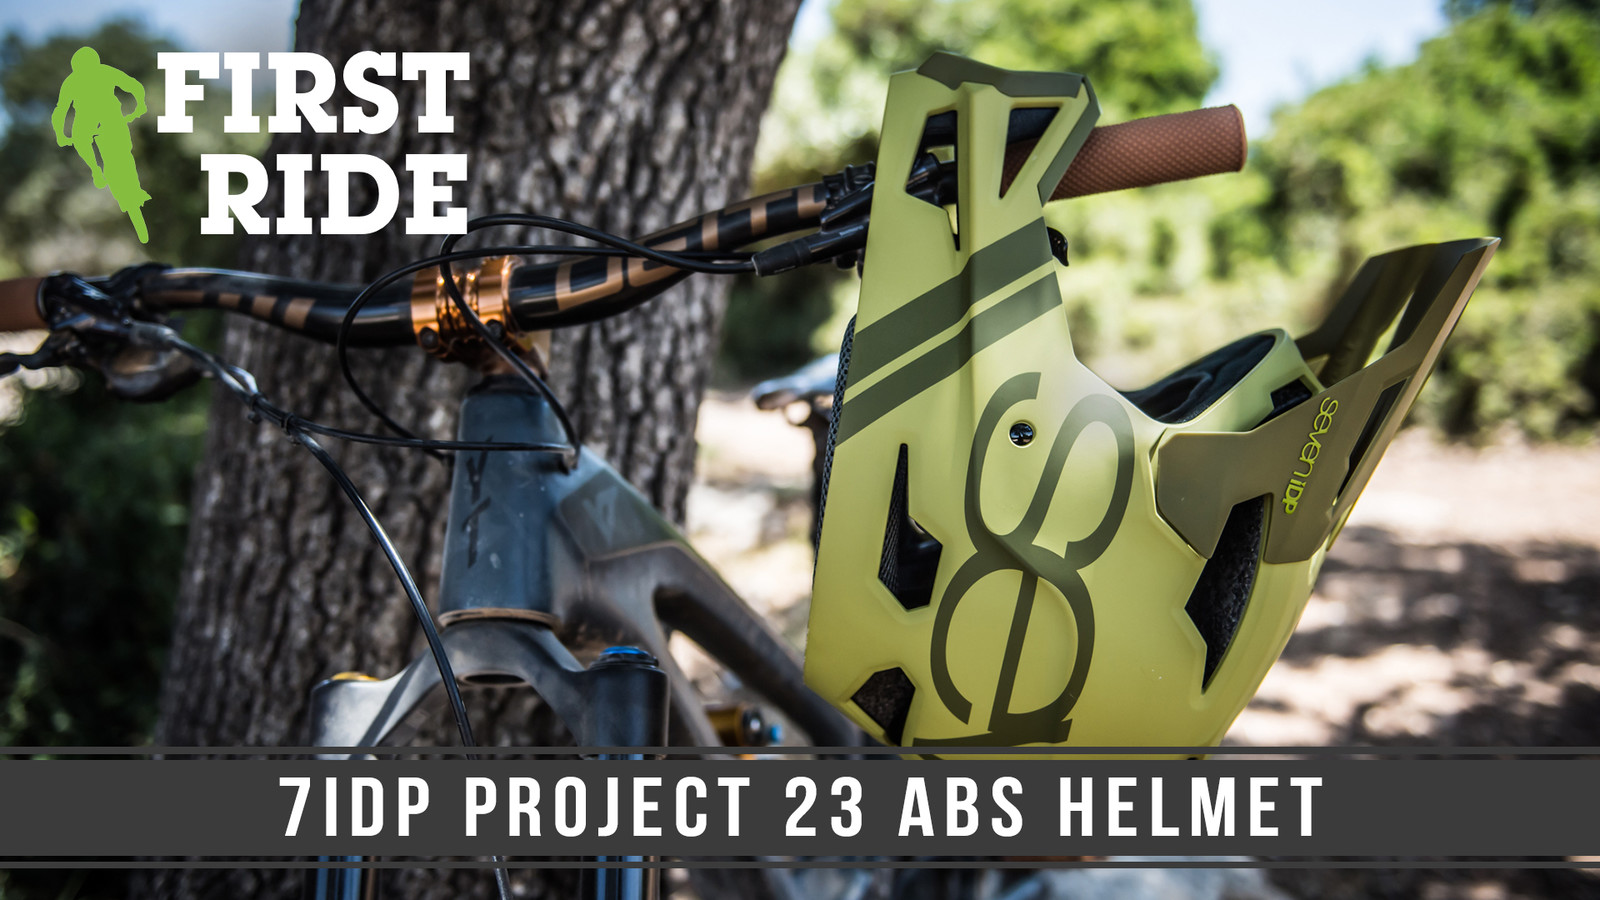 Lightweight and Ventilated: 7iDP Project 23 ABS First Ride